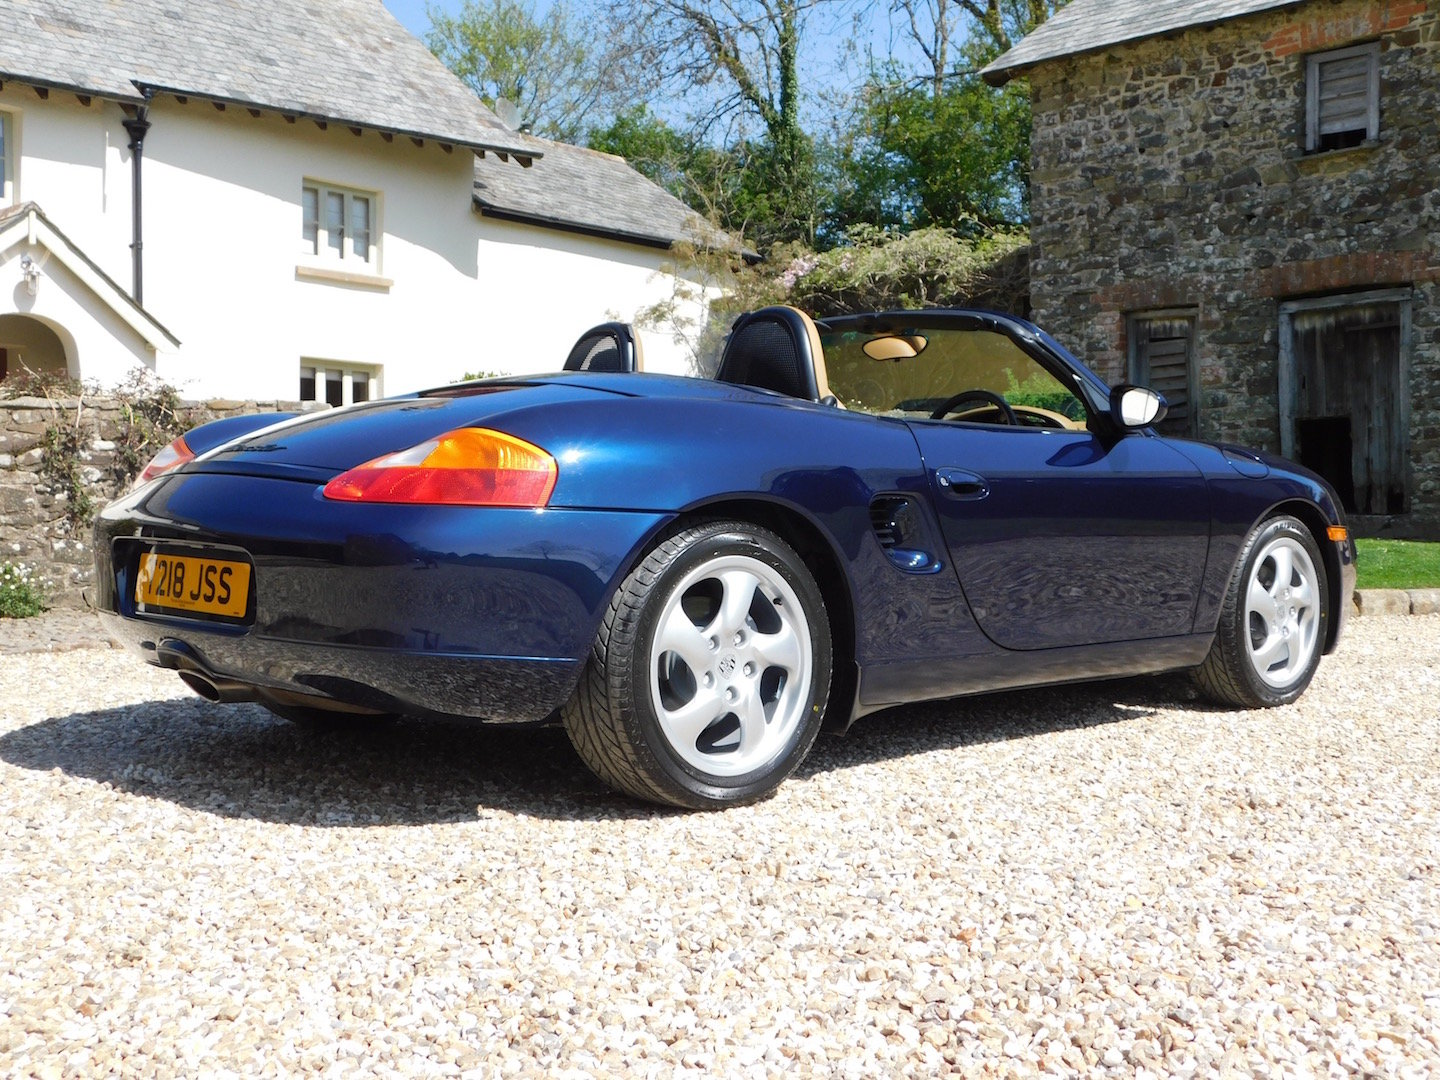 1999 Porsche Boxster 2.5 manual - 16k miles, 2 owners, incredible SOLD (picture 2 of 6)